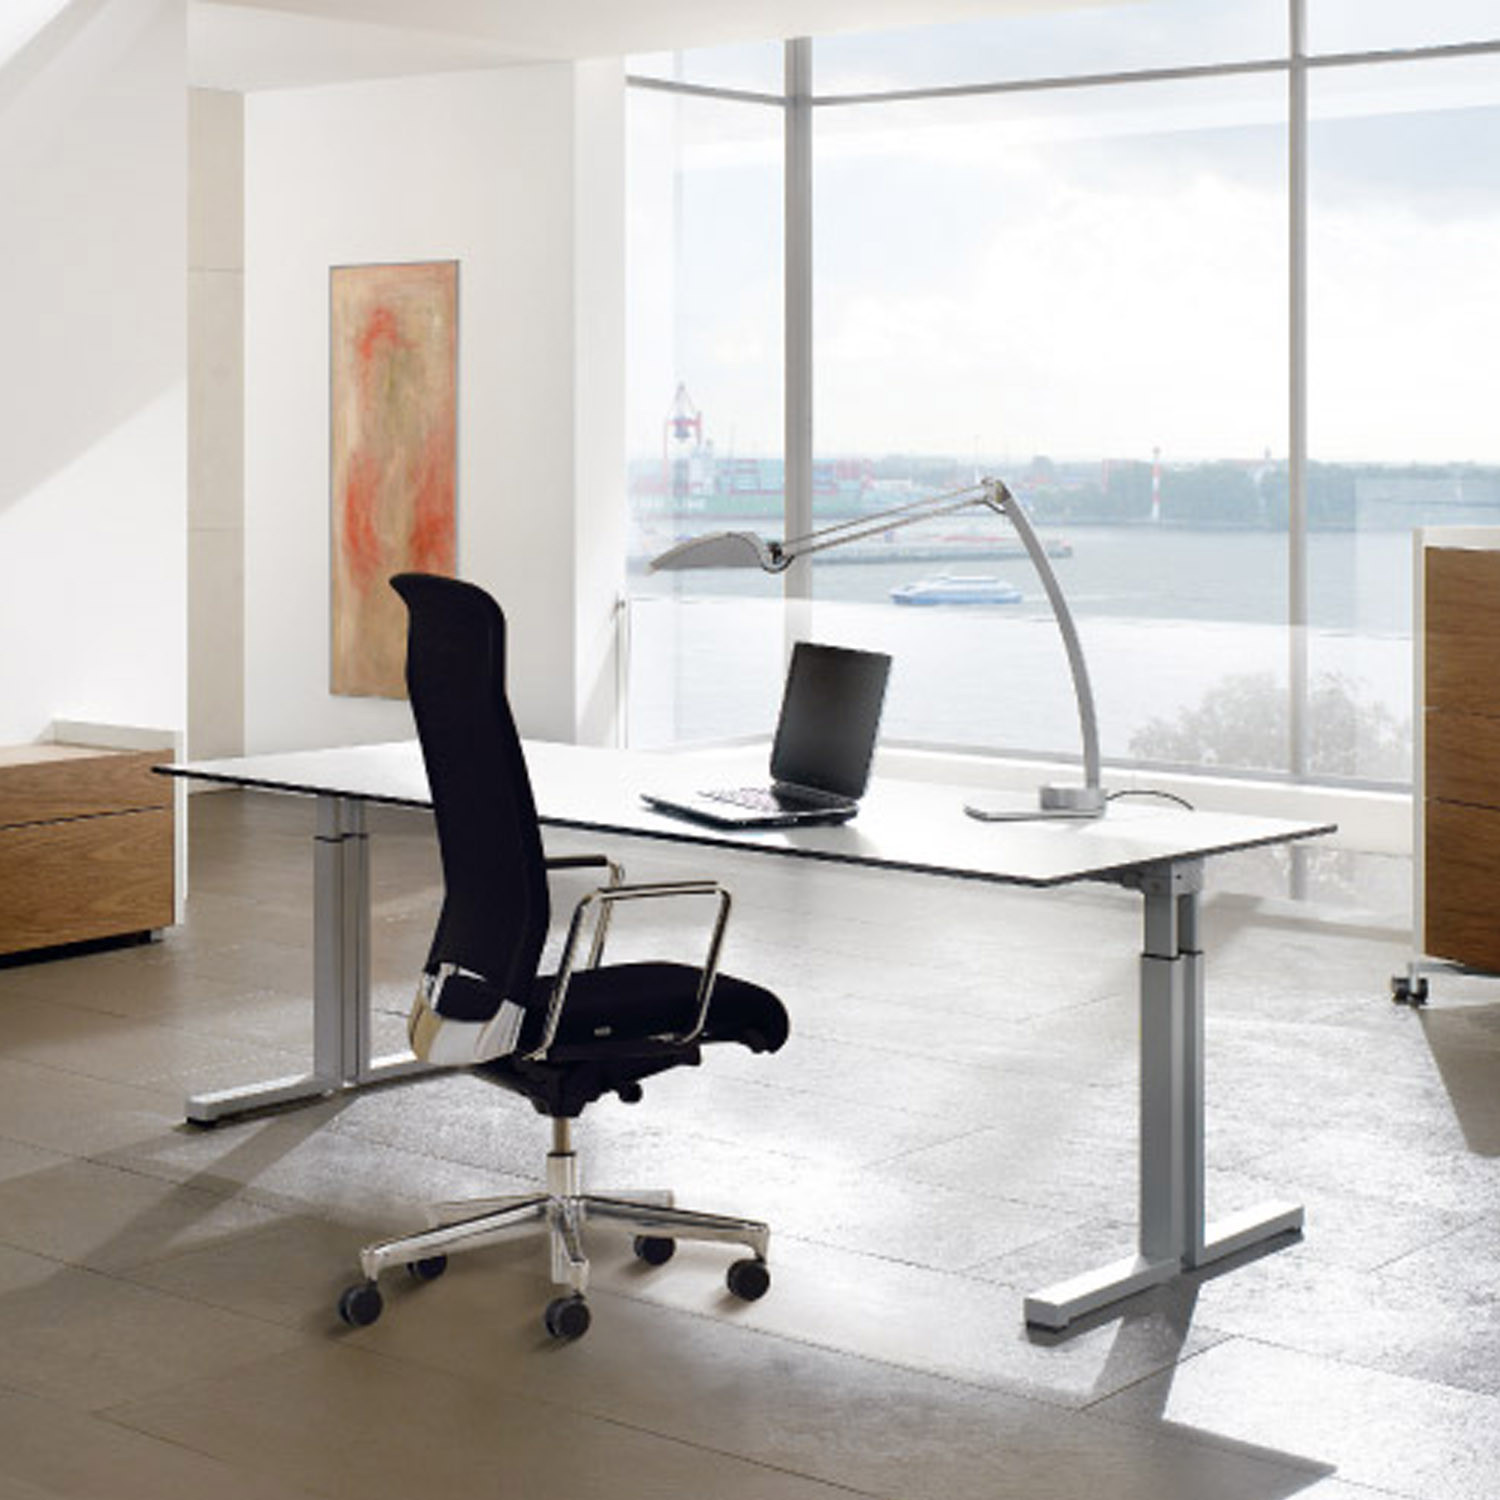 TriASS Height Adjustable Desks